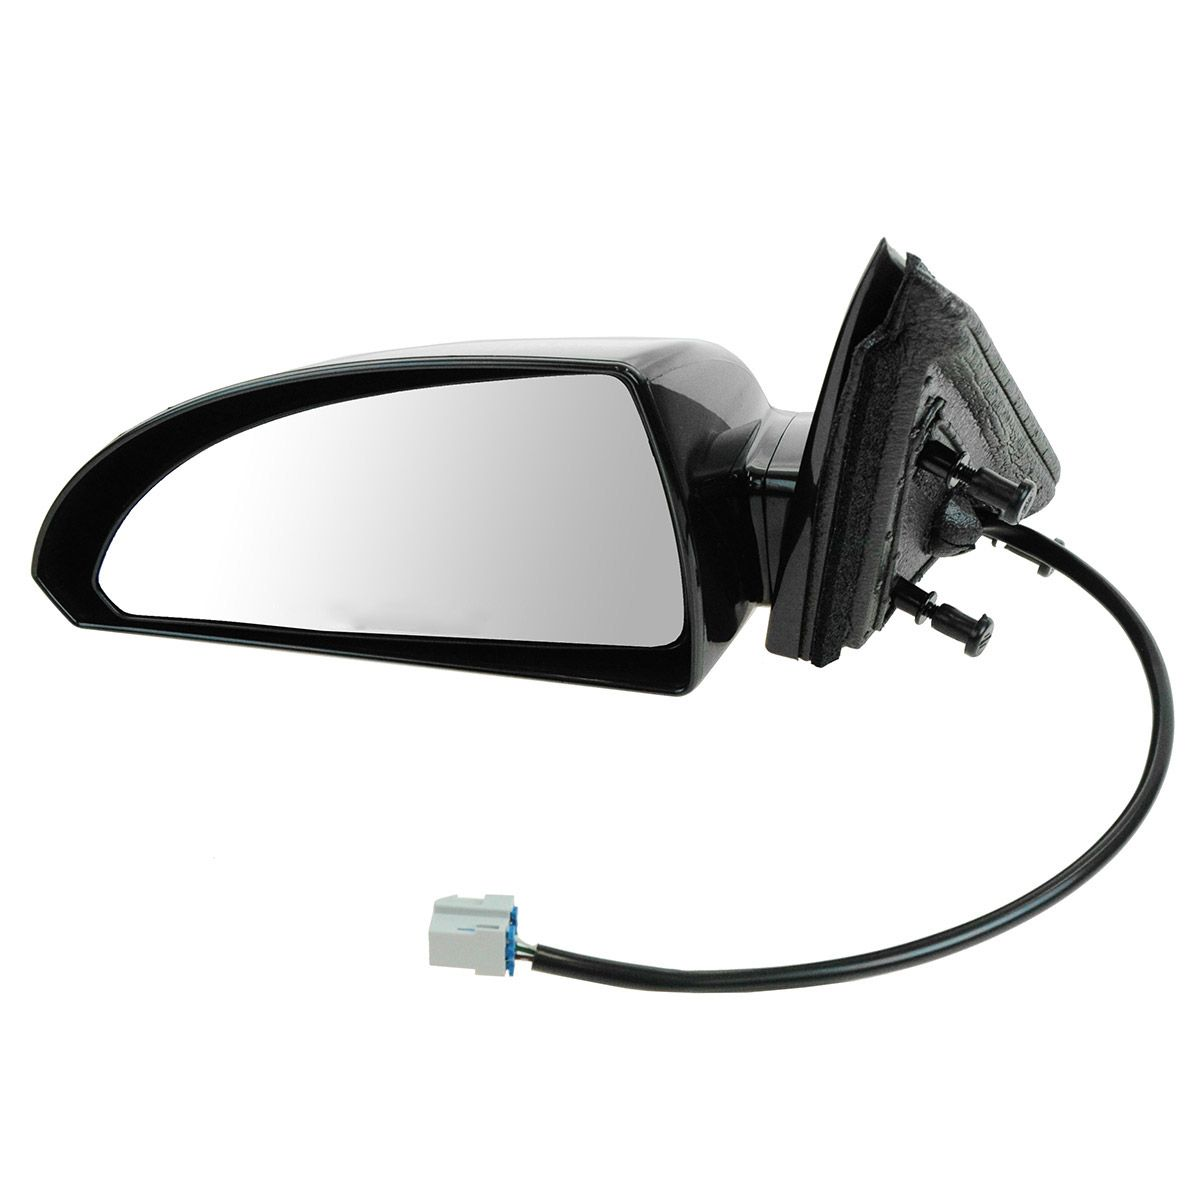 New Replacement Passenger/'s Side Mirror Glass for 00-05 CHEVY IMPALA Right Hand